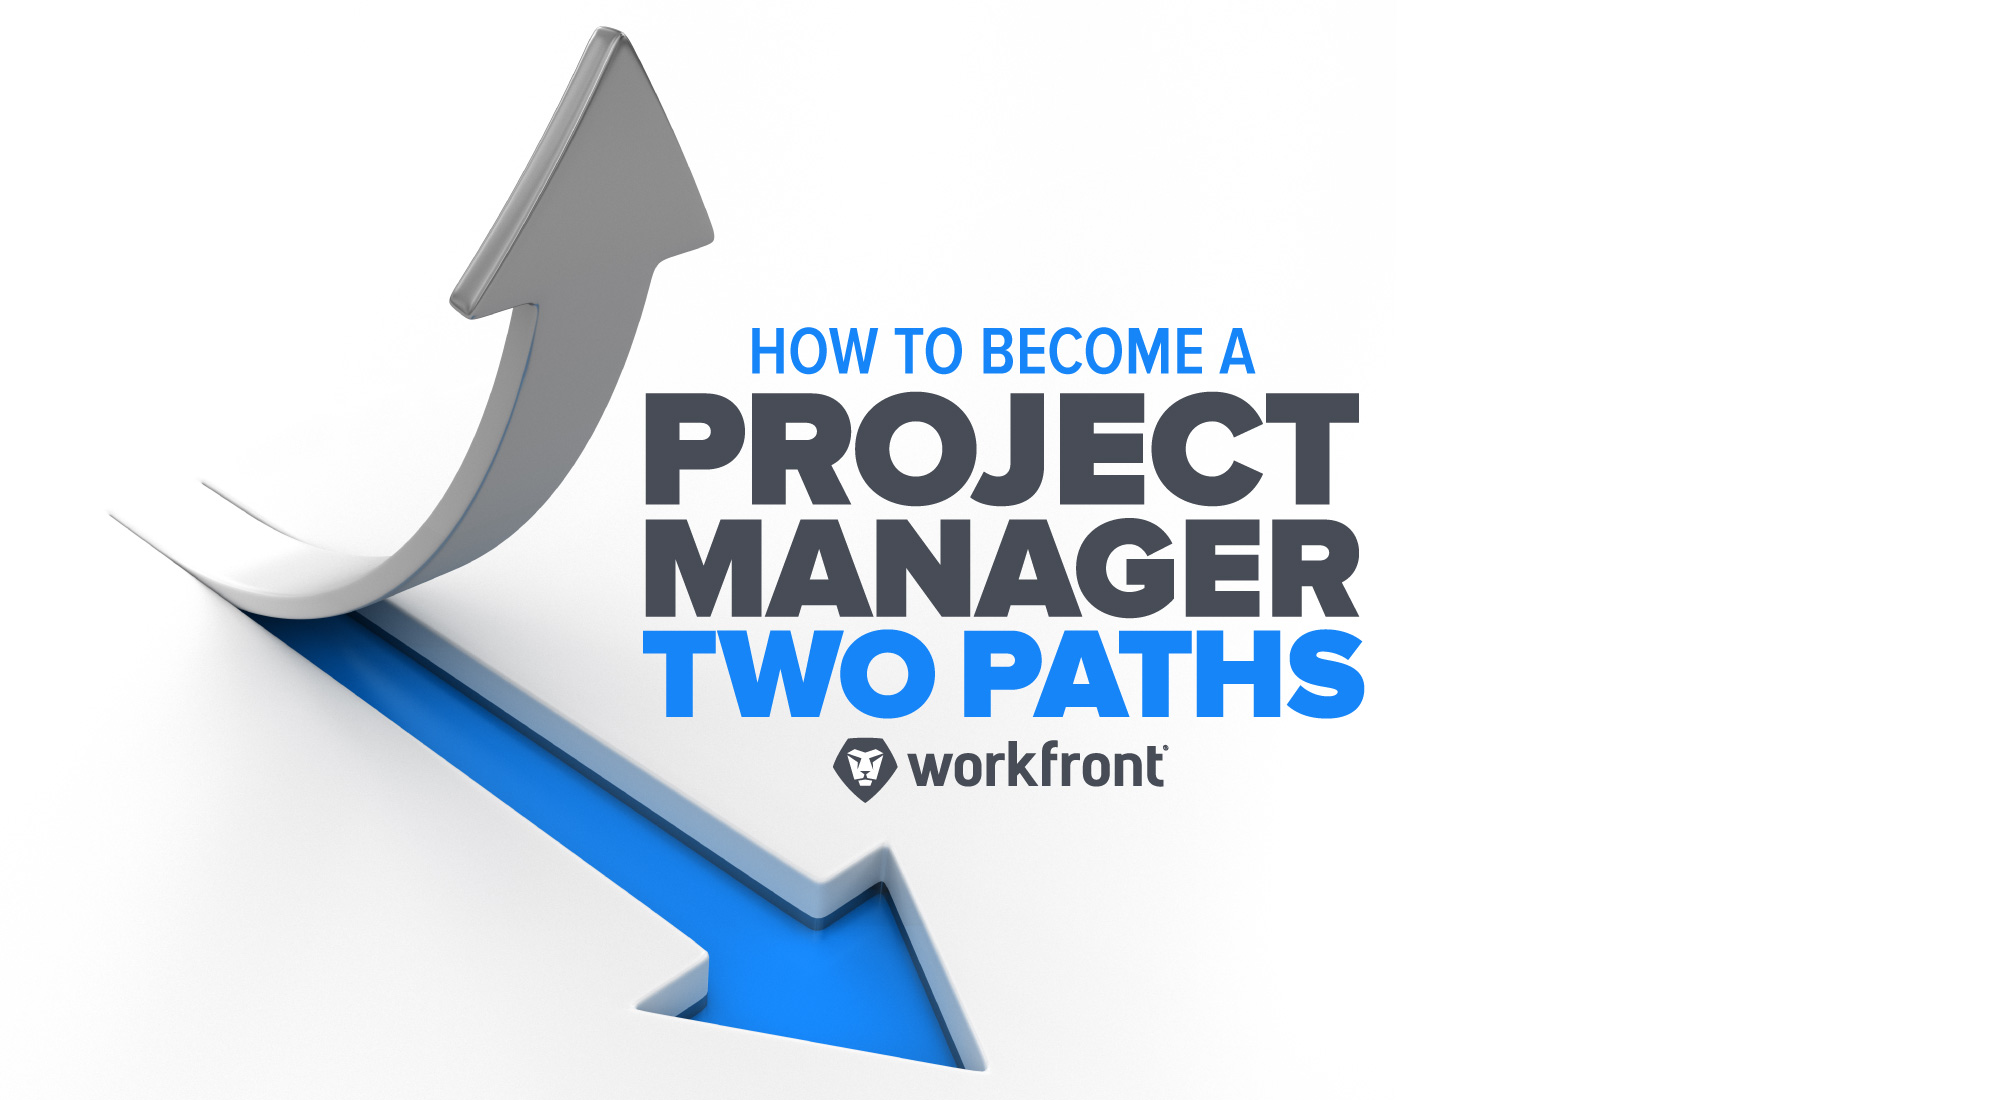 Project Manager Duties Responsibilities How To Become A Project Manager Two Paths Workfront